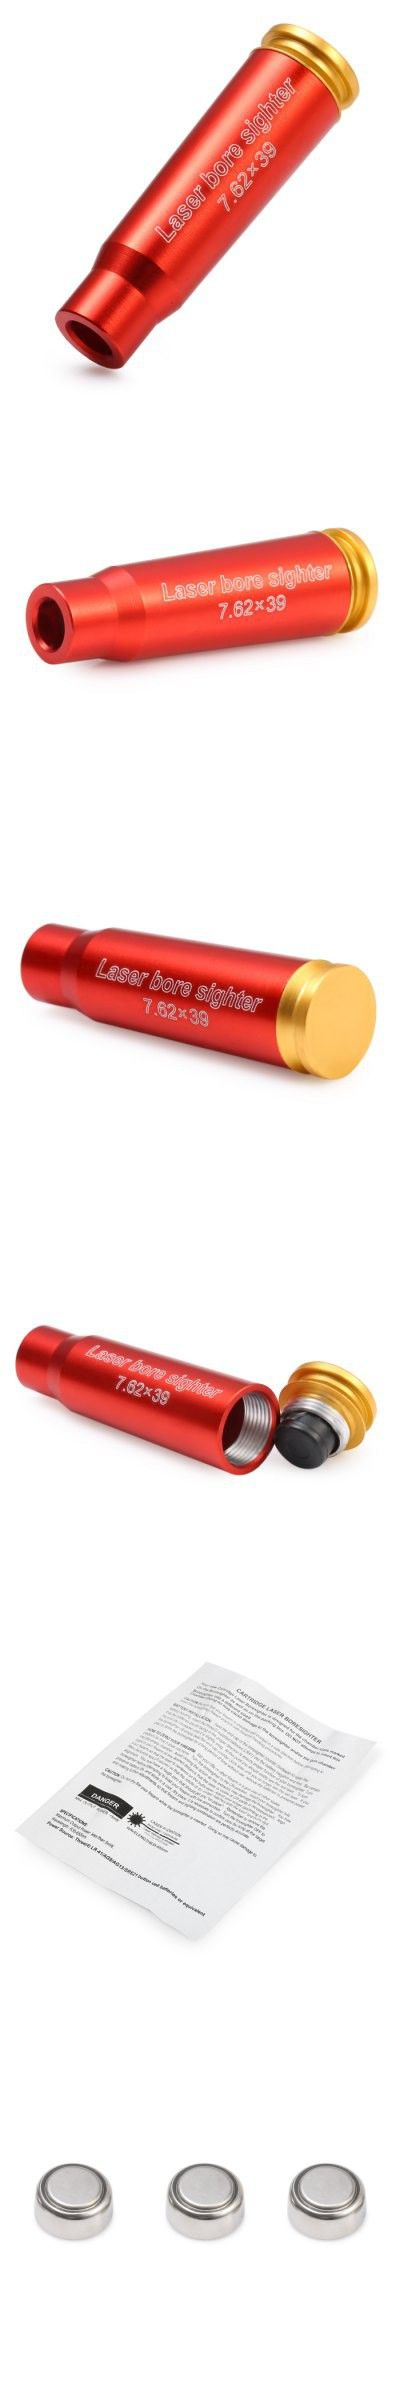 Guns / Hunting Supplies | Rifle Hunting 7.62 x 39RR Cartridge Red Laser Bore Sighter $9.05